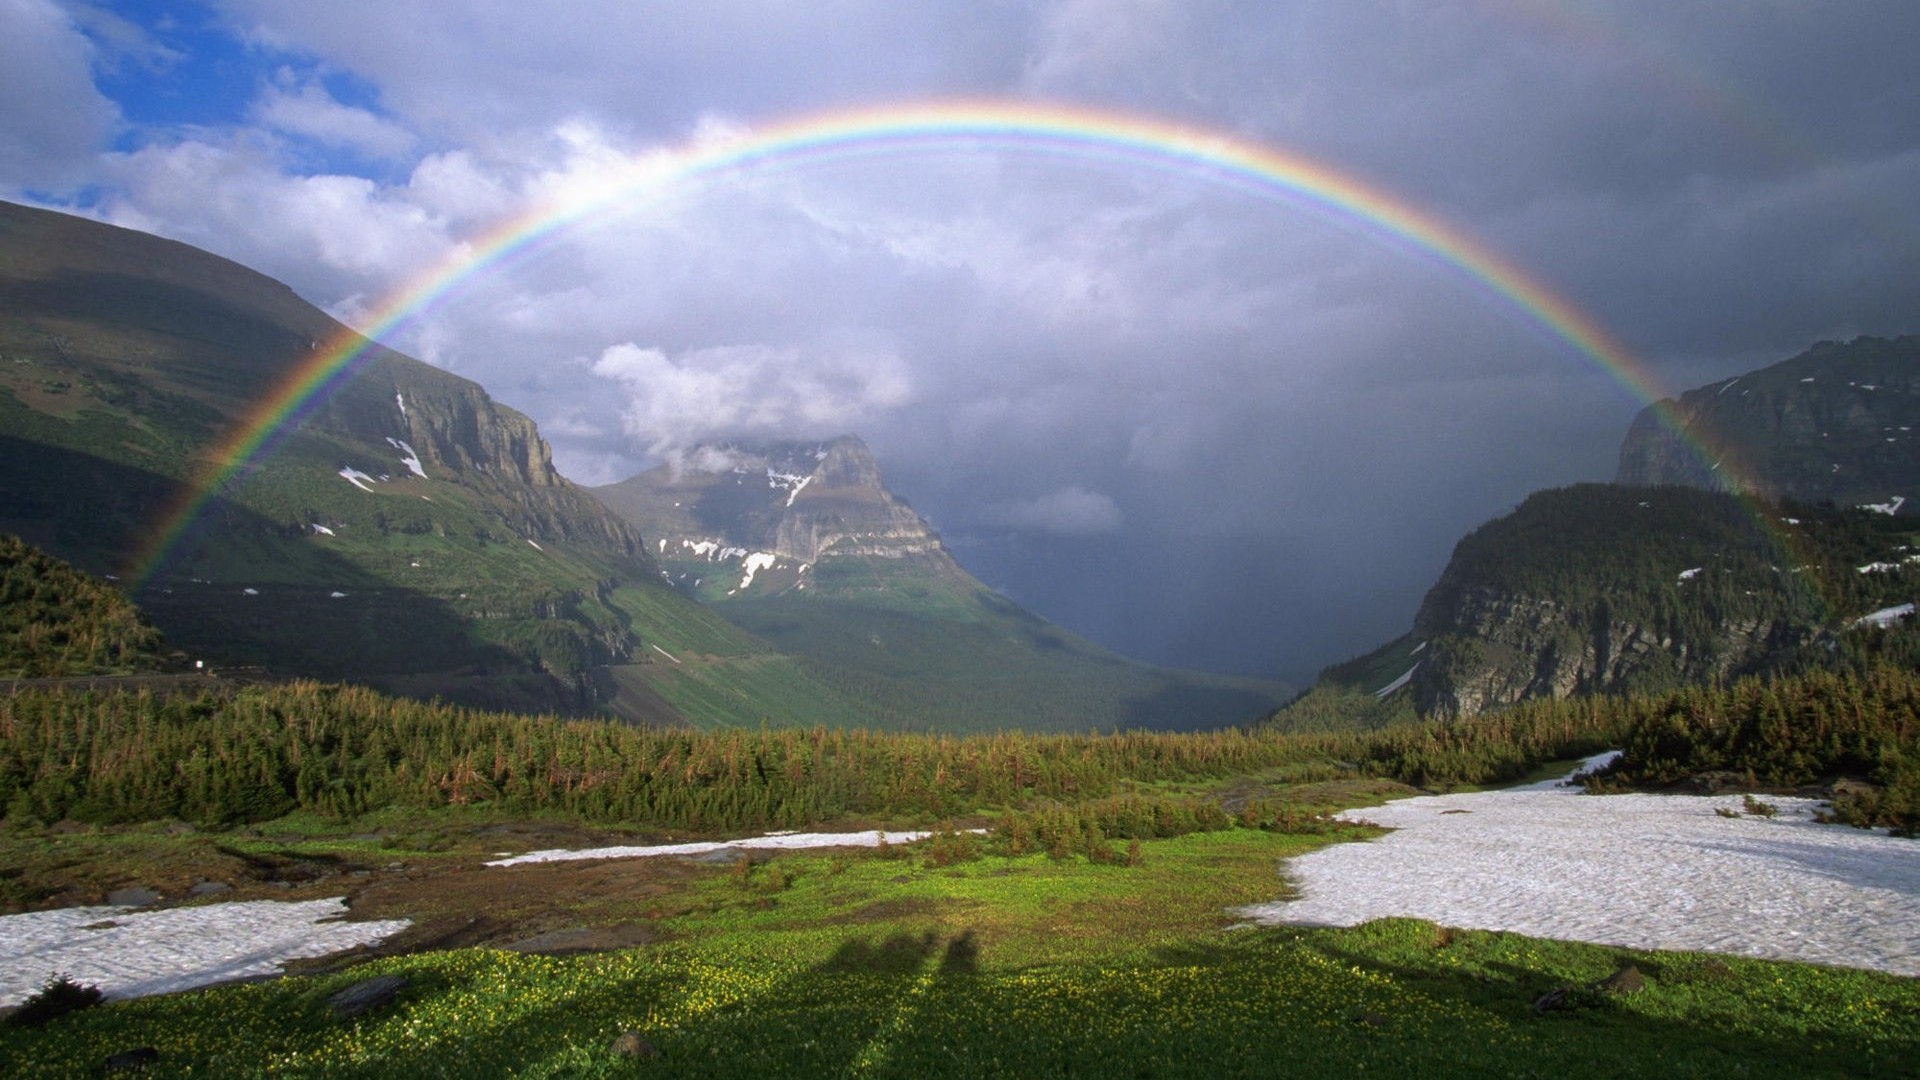 Picturesque High Resolution Rainbow Background - HD Wallpapers Picturesque